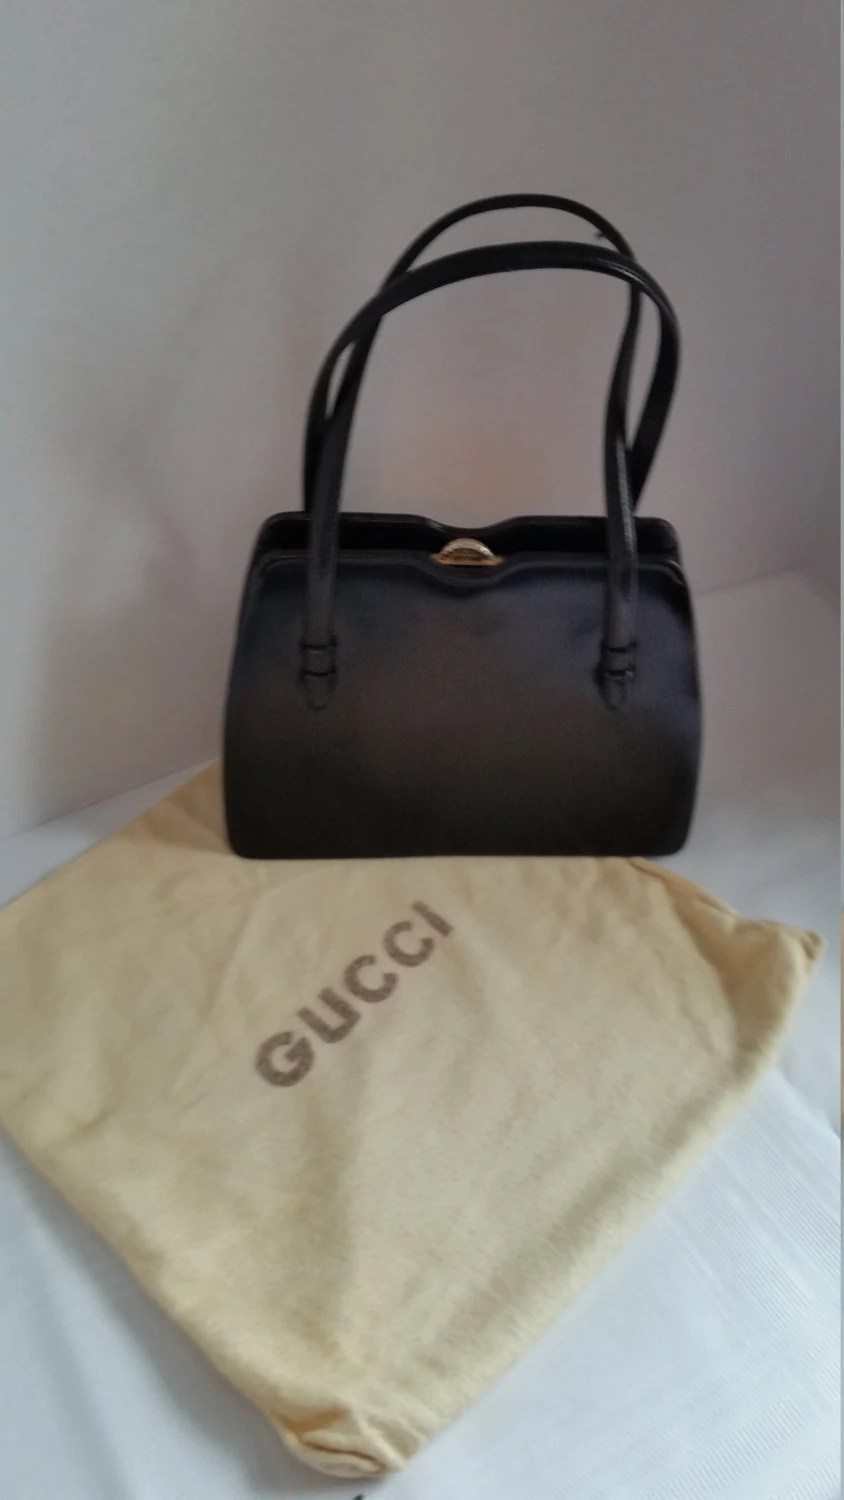 Etsy Vintage Gucci Vintage Gucci Smooth Leather Handbag Set 1960